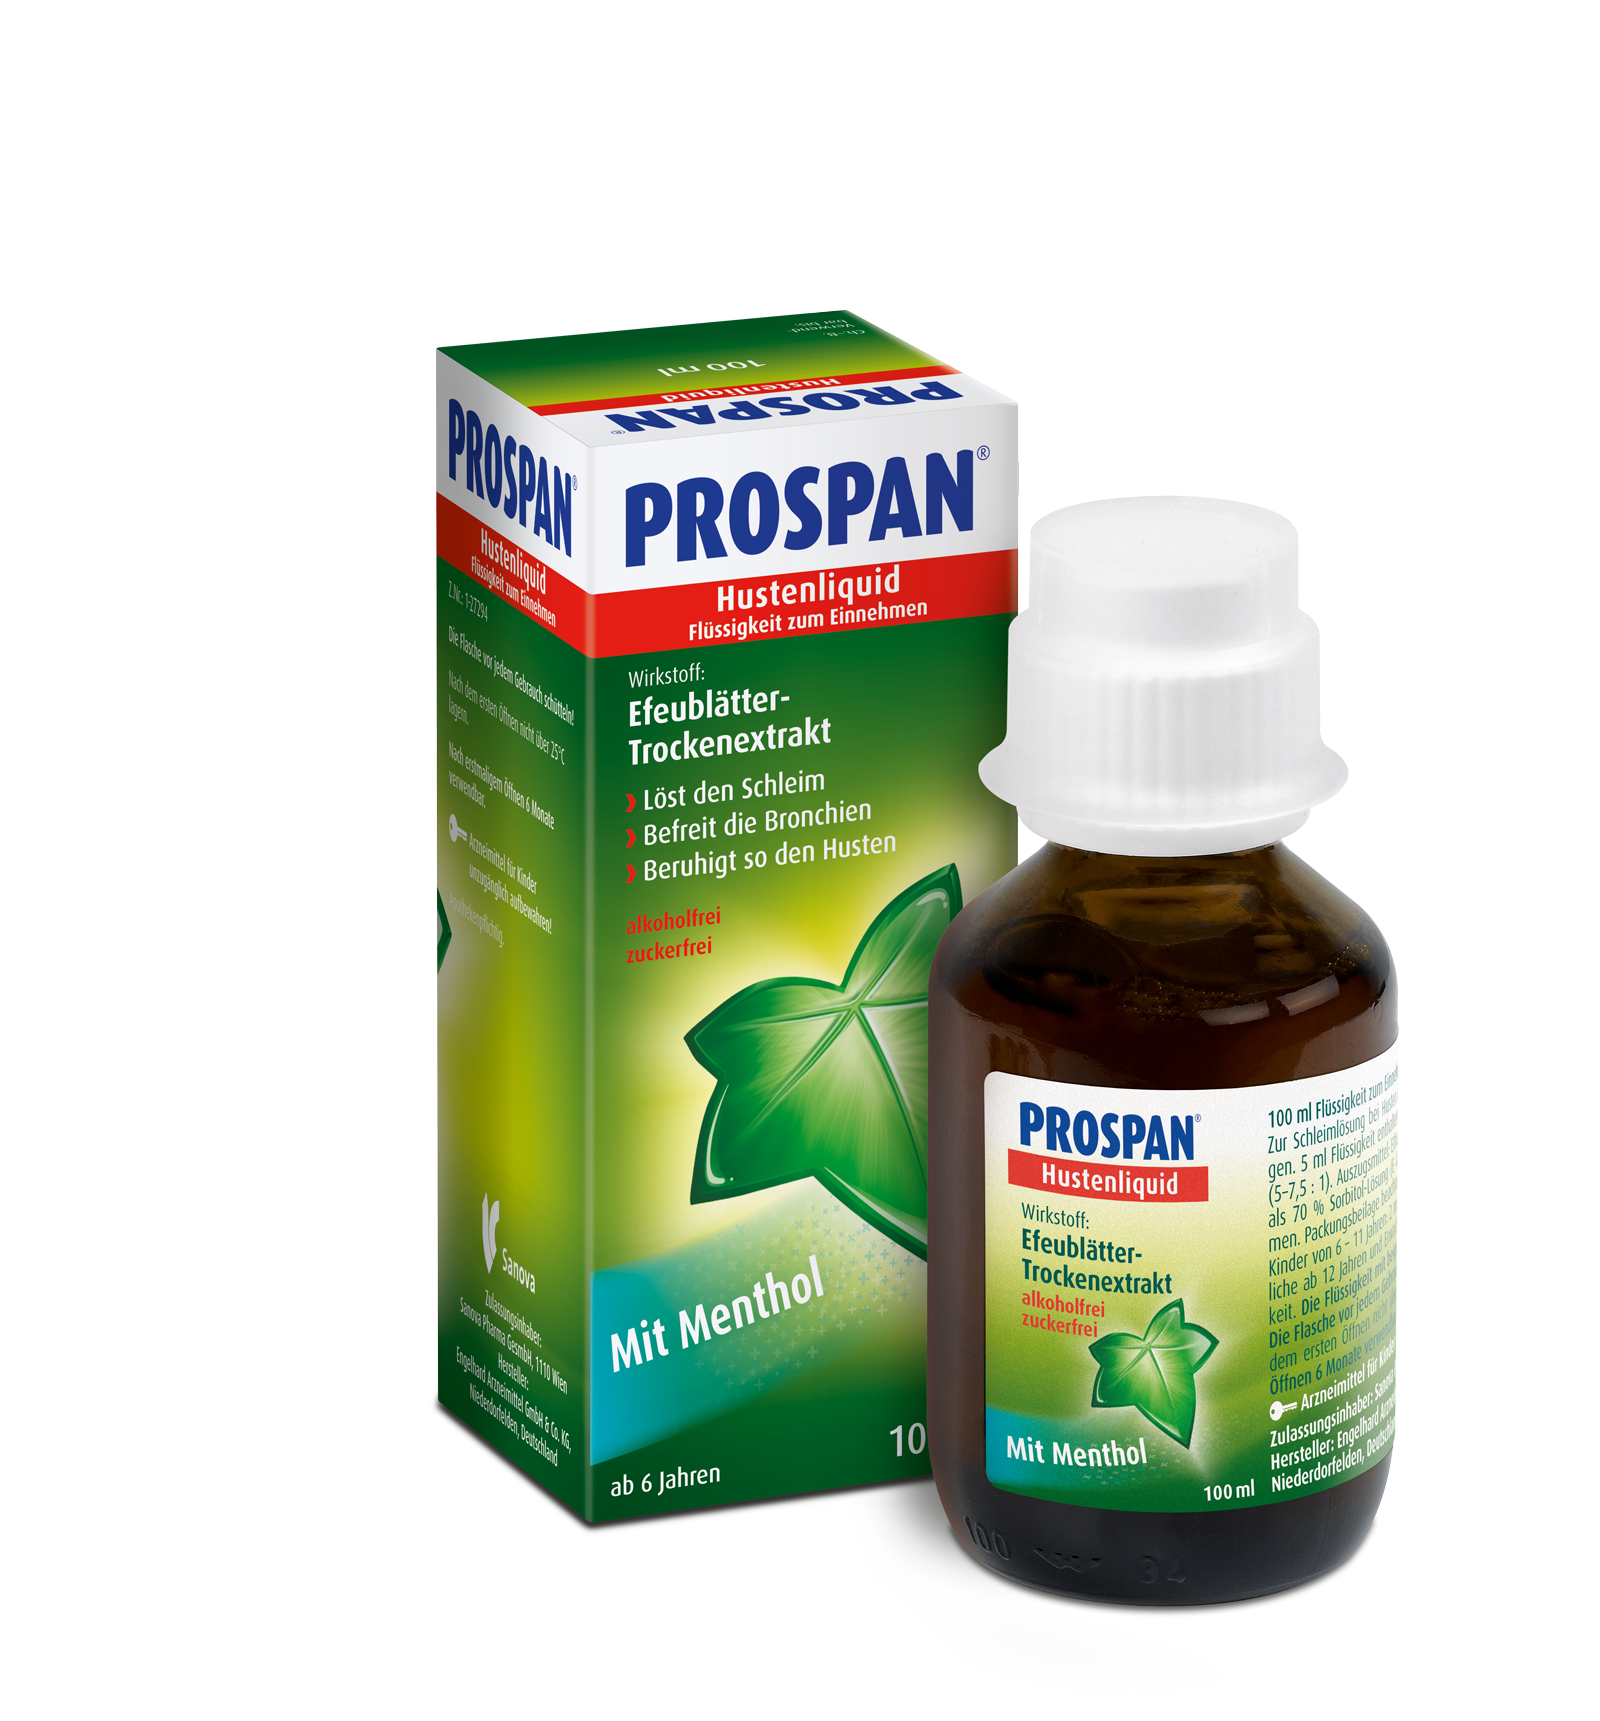 Prospan_Menthol_100_Pack_Bottle_2017